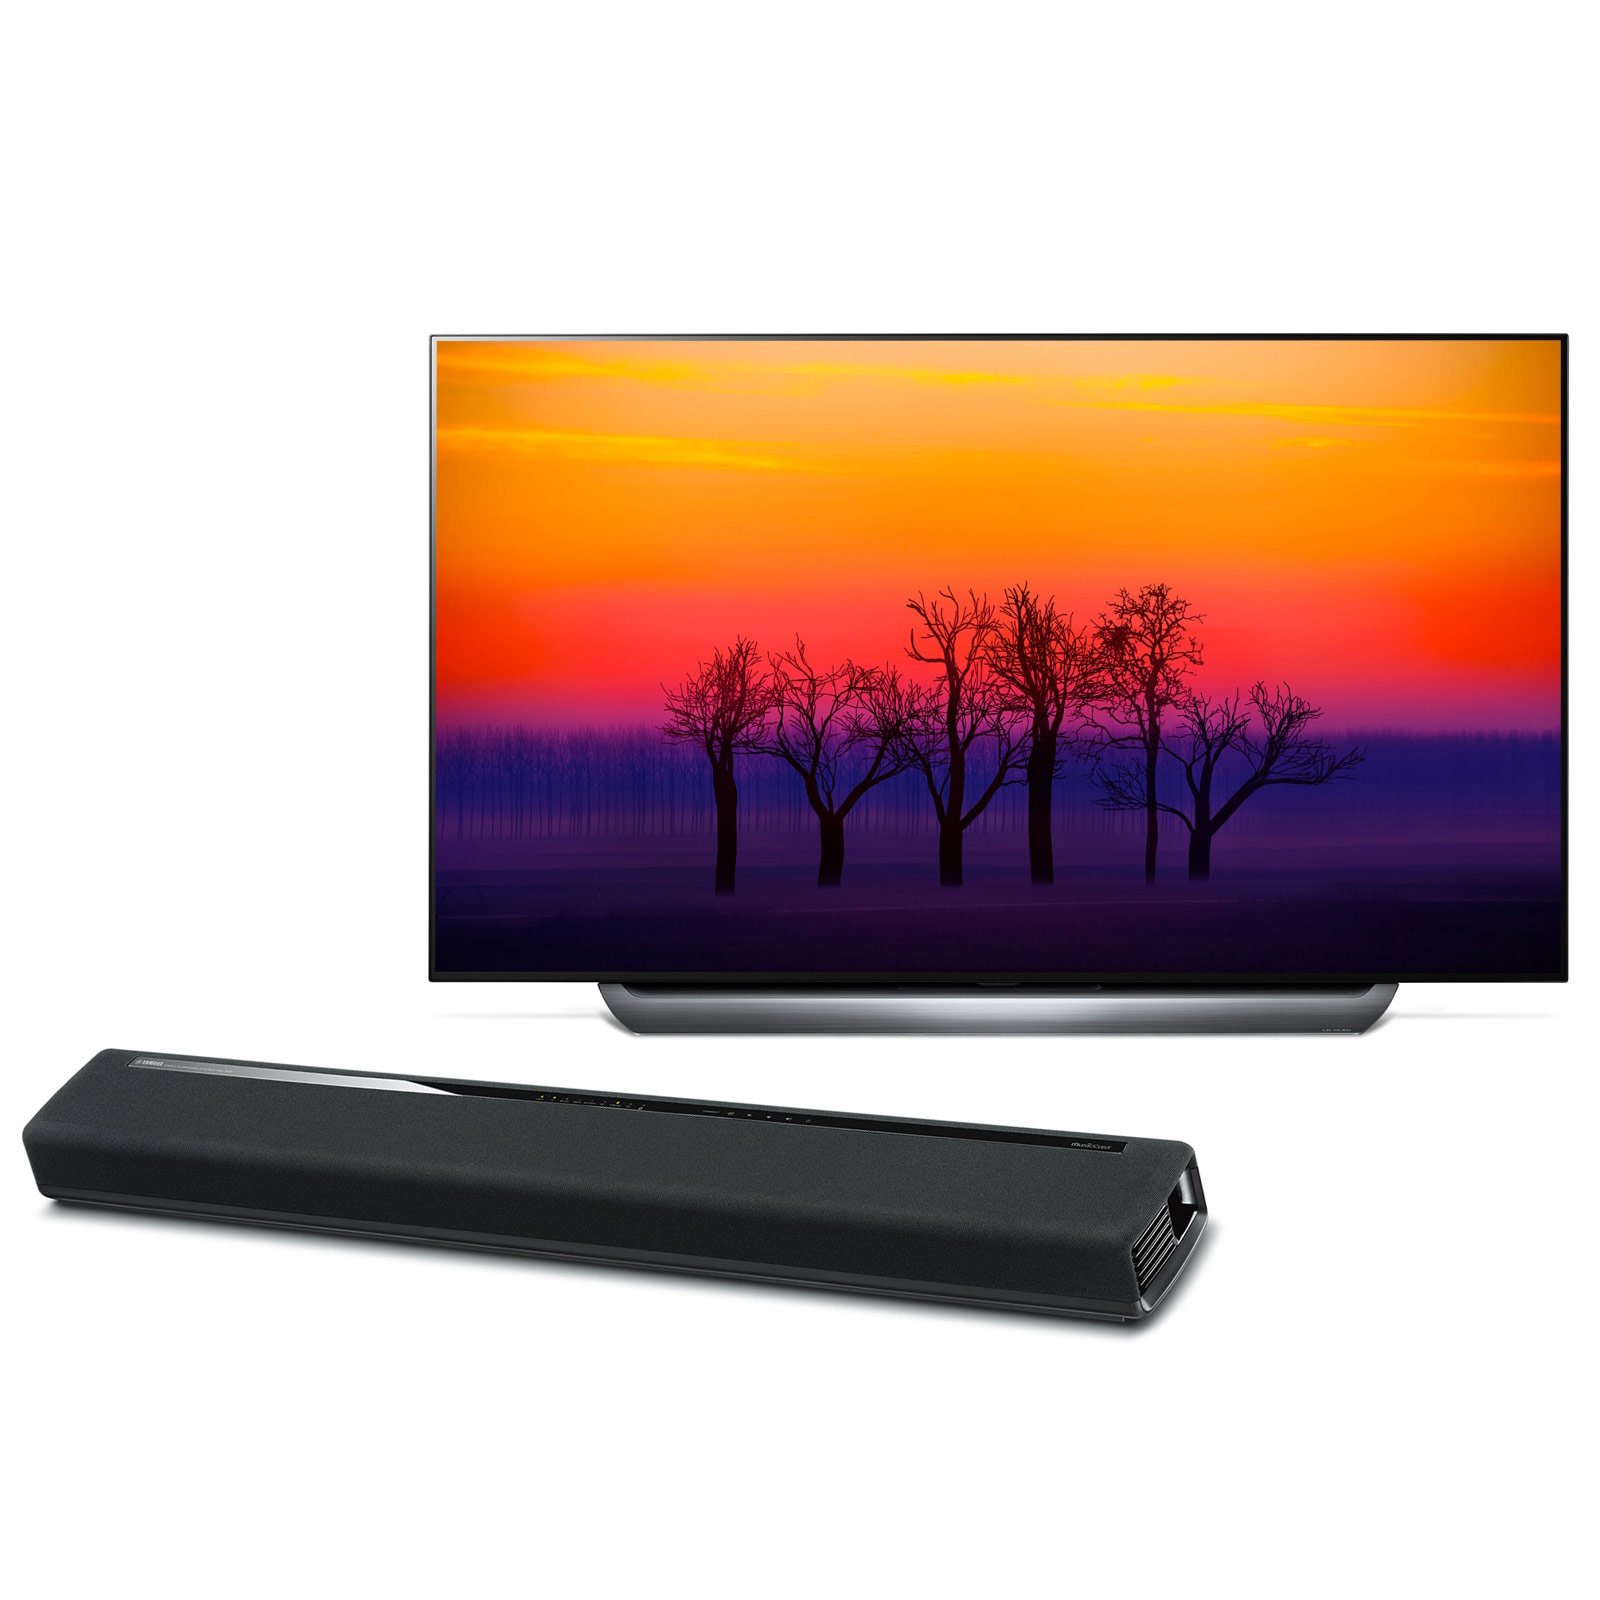 "TV LG OLED65C8 + Yamaha MusicCast YAS-306 Noir Téléviseur OLED 4K 65"" (165 cm) 16/9 - 3840 x 2160 pixels - Ultra HD 2160p - HDR - Wi-Fi - Bluetooth - Dolby Atmos (dalle native 100 Hz) + Barre de son 2.1 Bluetooth avec MusicCast"